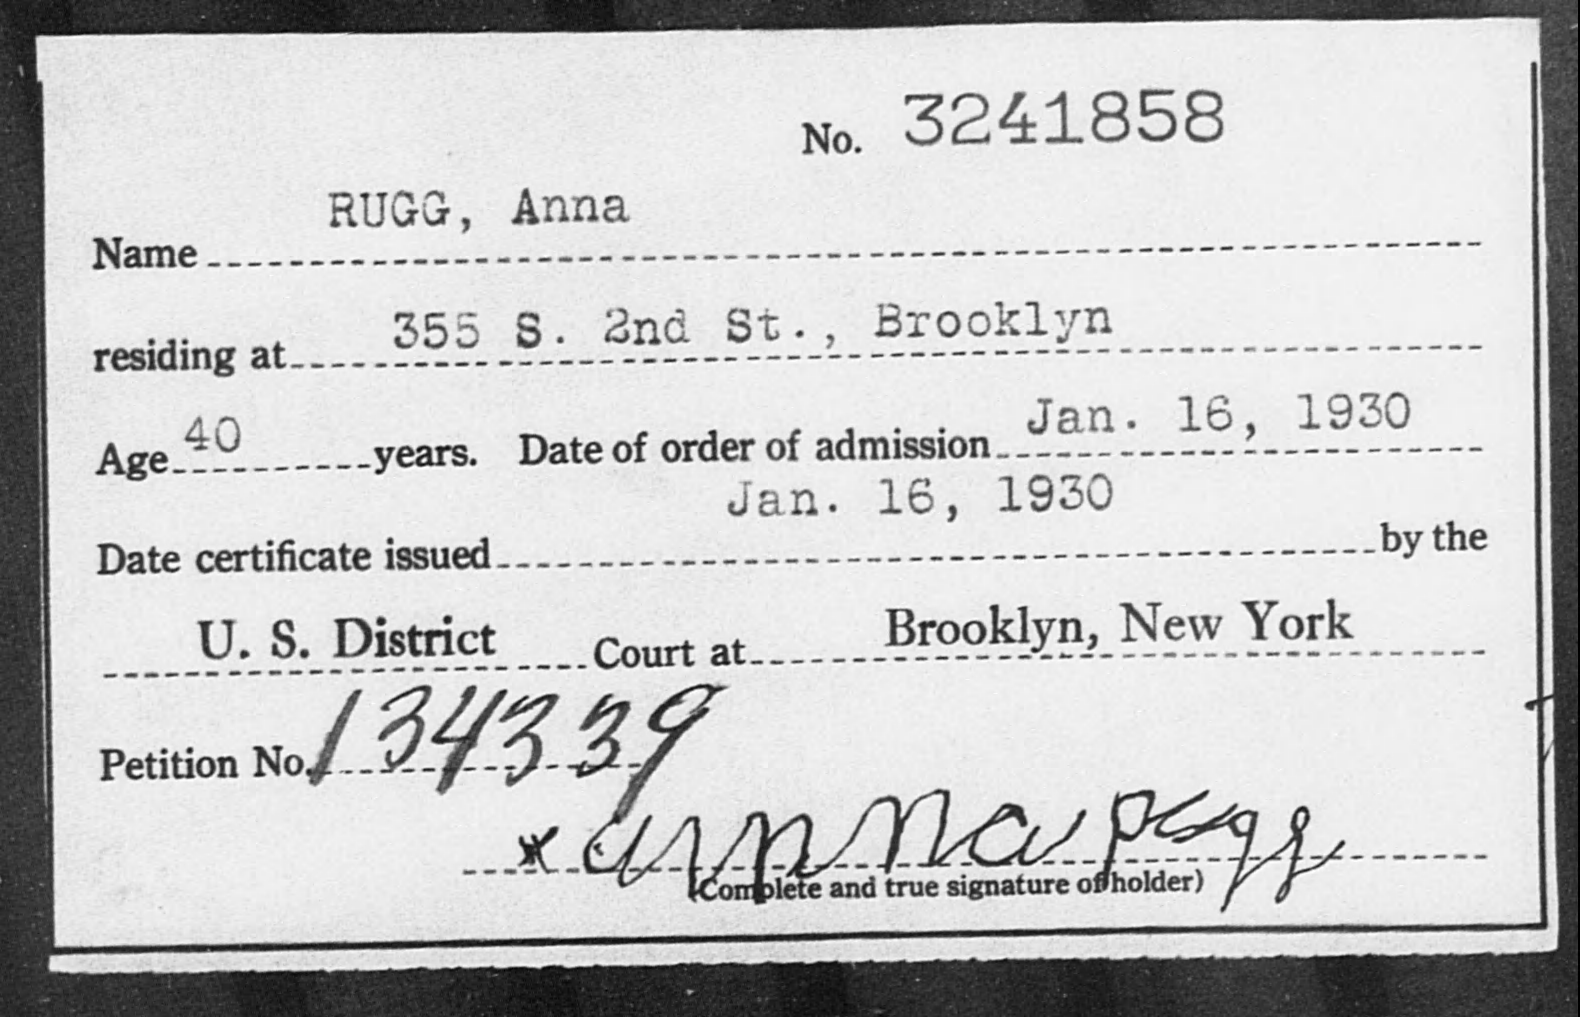 RUGG, Anna - Born: [BLANK], Naturalized: 1930